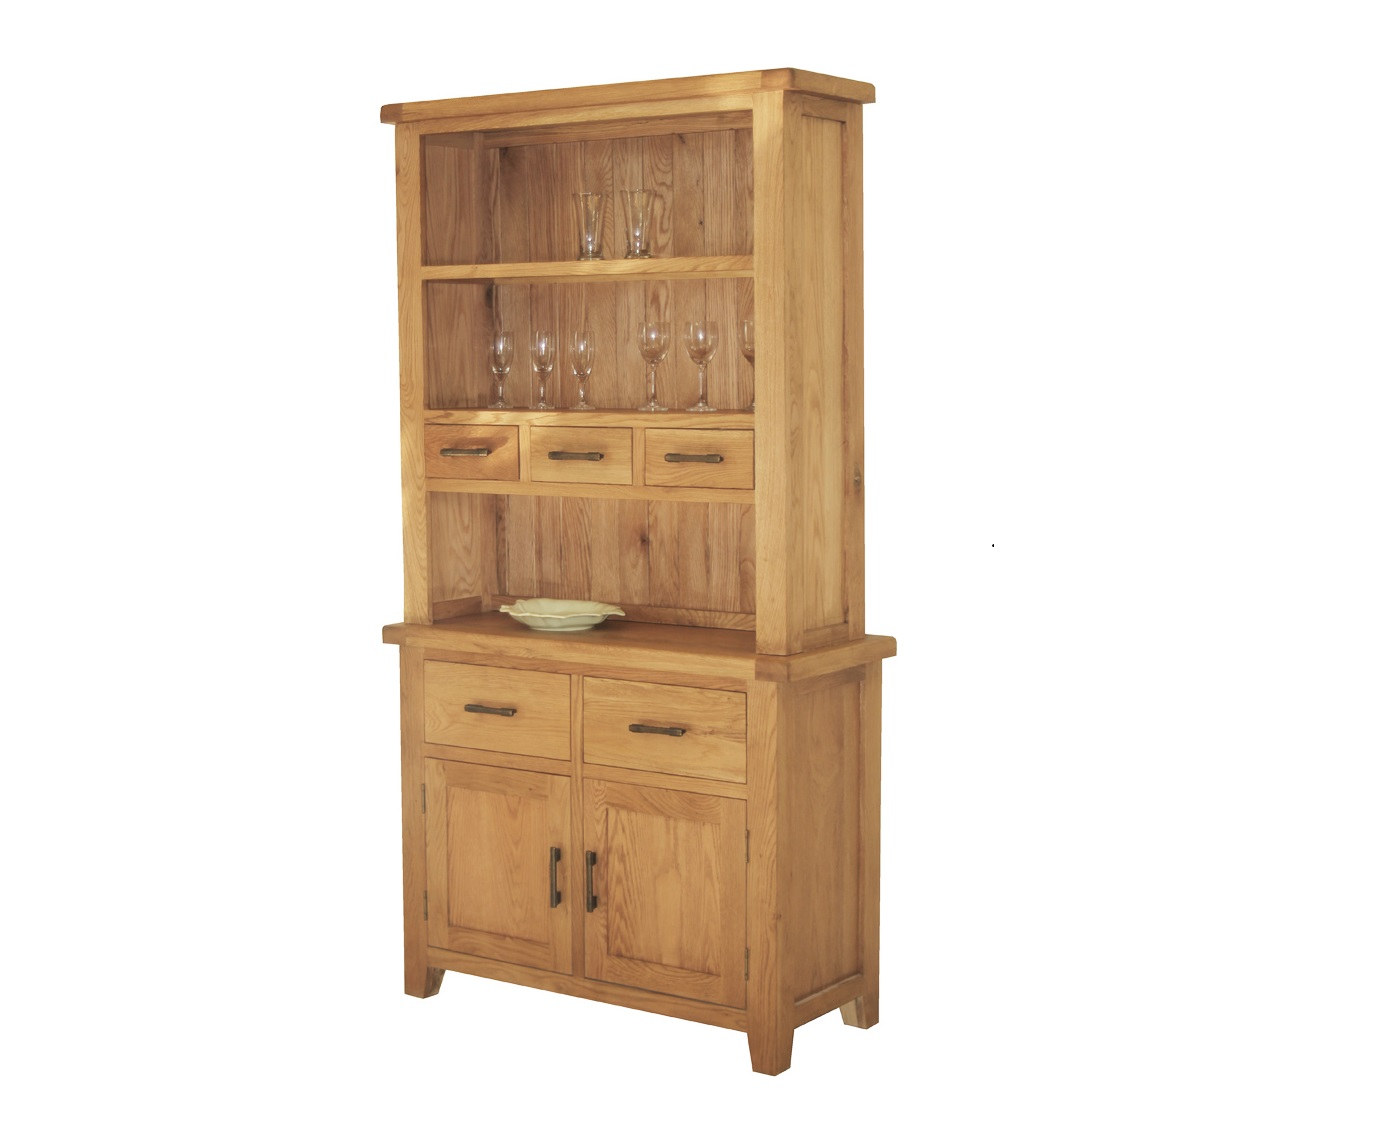 Meubles Furniture Ireland Homeline Furniture Ireland Bedroom Kitchen Kids Furniture